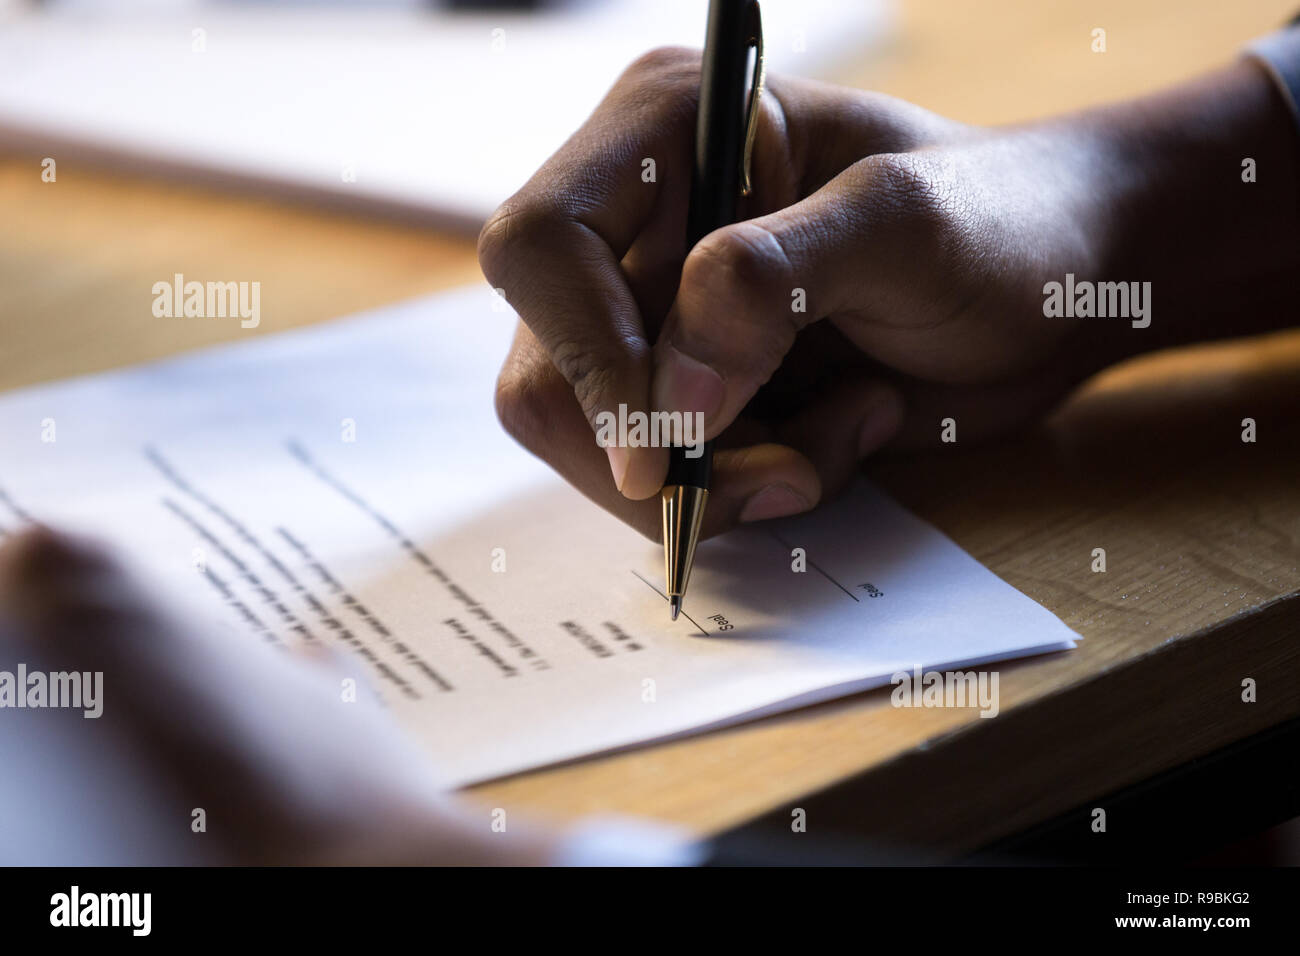 Male african hand write signature on legal corporate paper docum - Stock Image